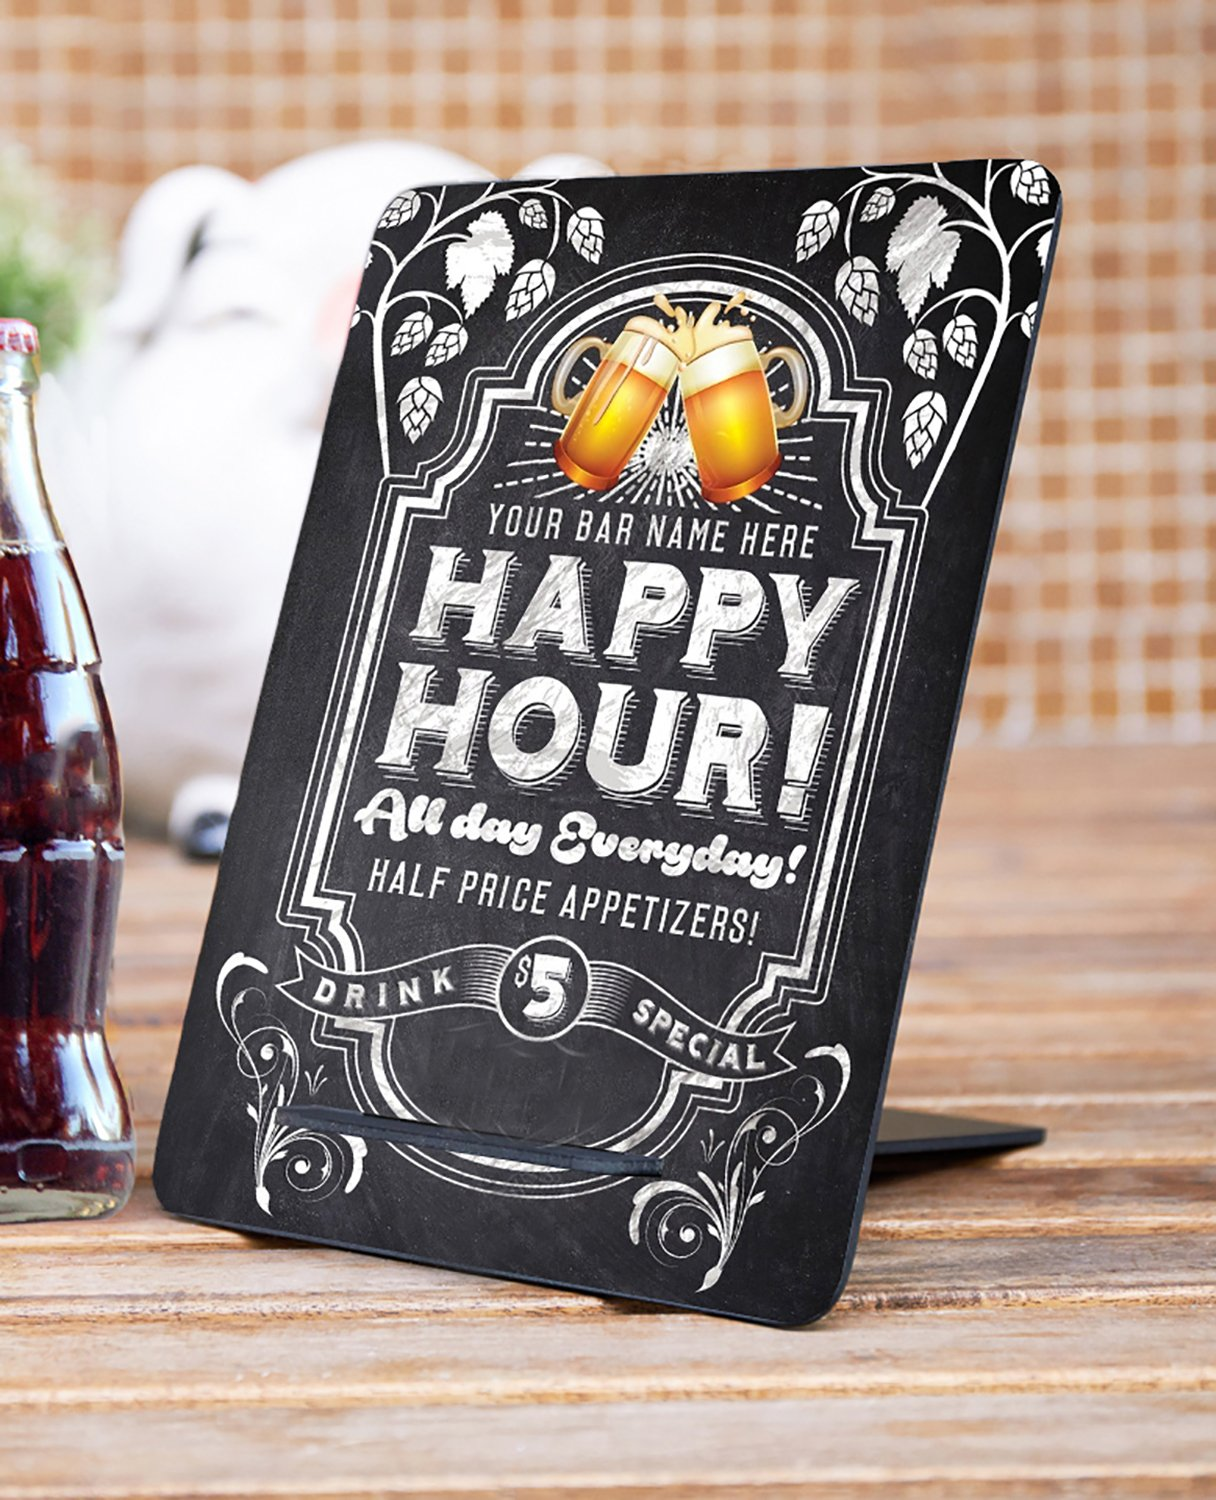 officematters 9.4 x 7 inch Rectangle Tabletop Chalkboard with Trestle, Wood Message Board Signs for Party Wedding Home Decor